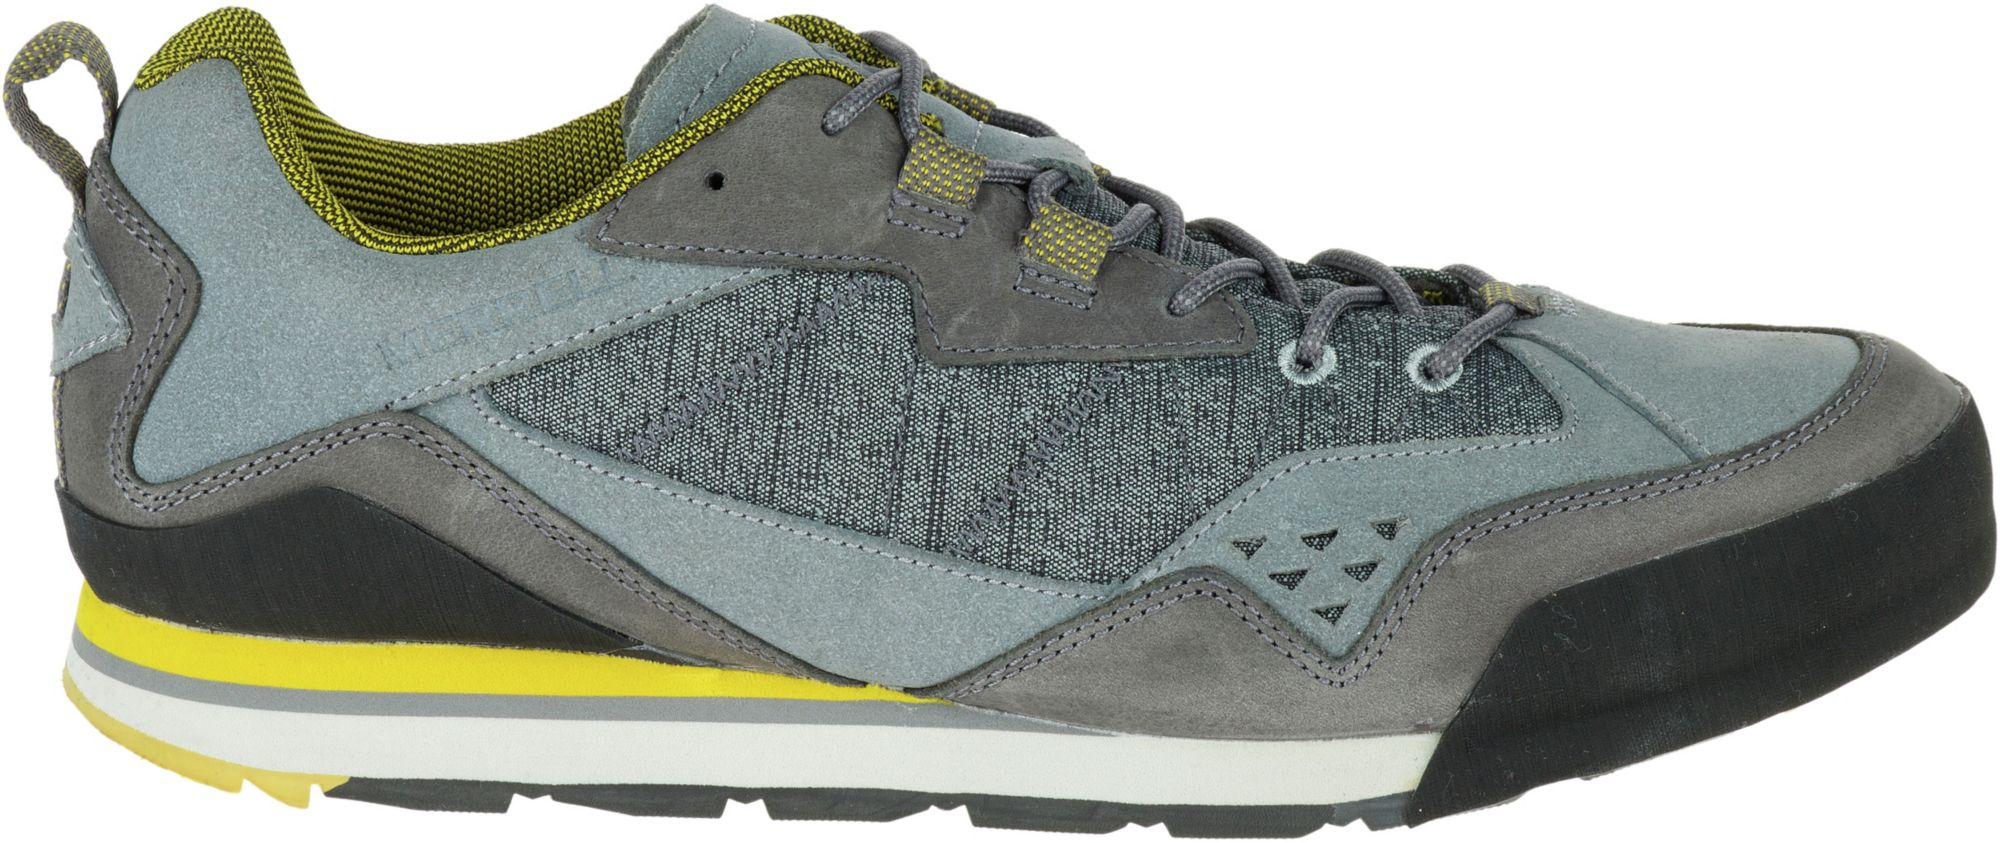 Merrell Men's Burnt Rock Low Casual Shoes. 0:00. 0:00 / 0:00. noImageFound  ???